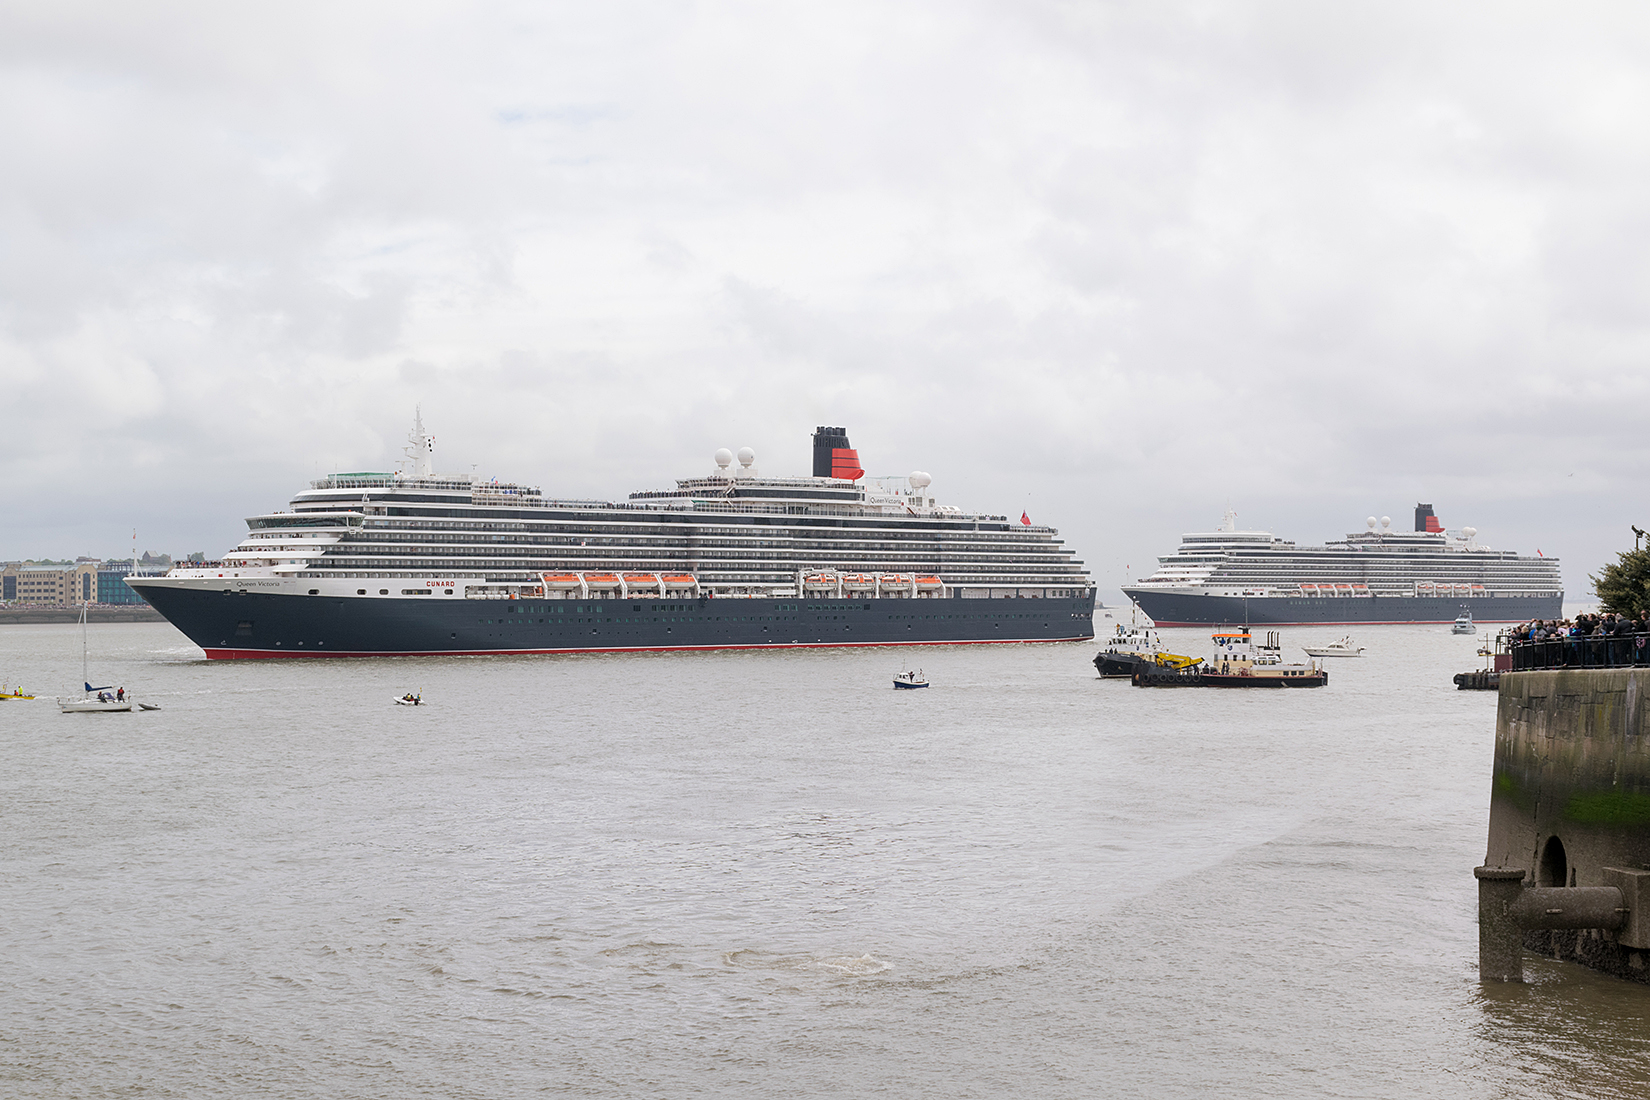 Manouvers completed Queen Victoria and Queen Elizabeth move forward